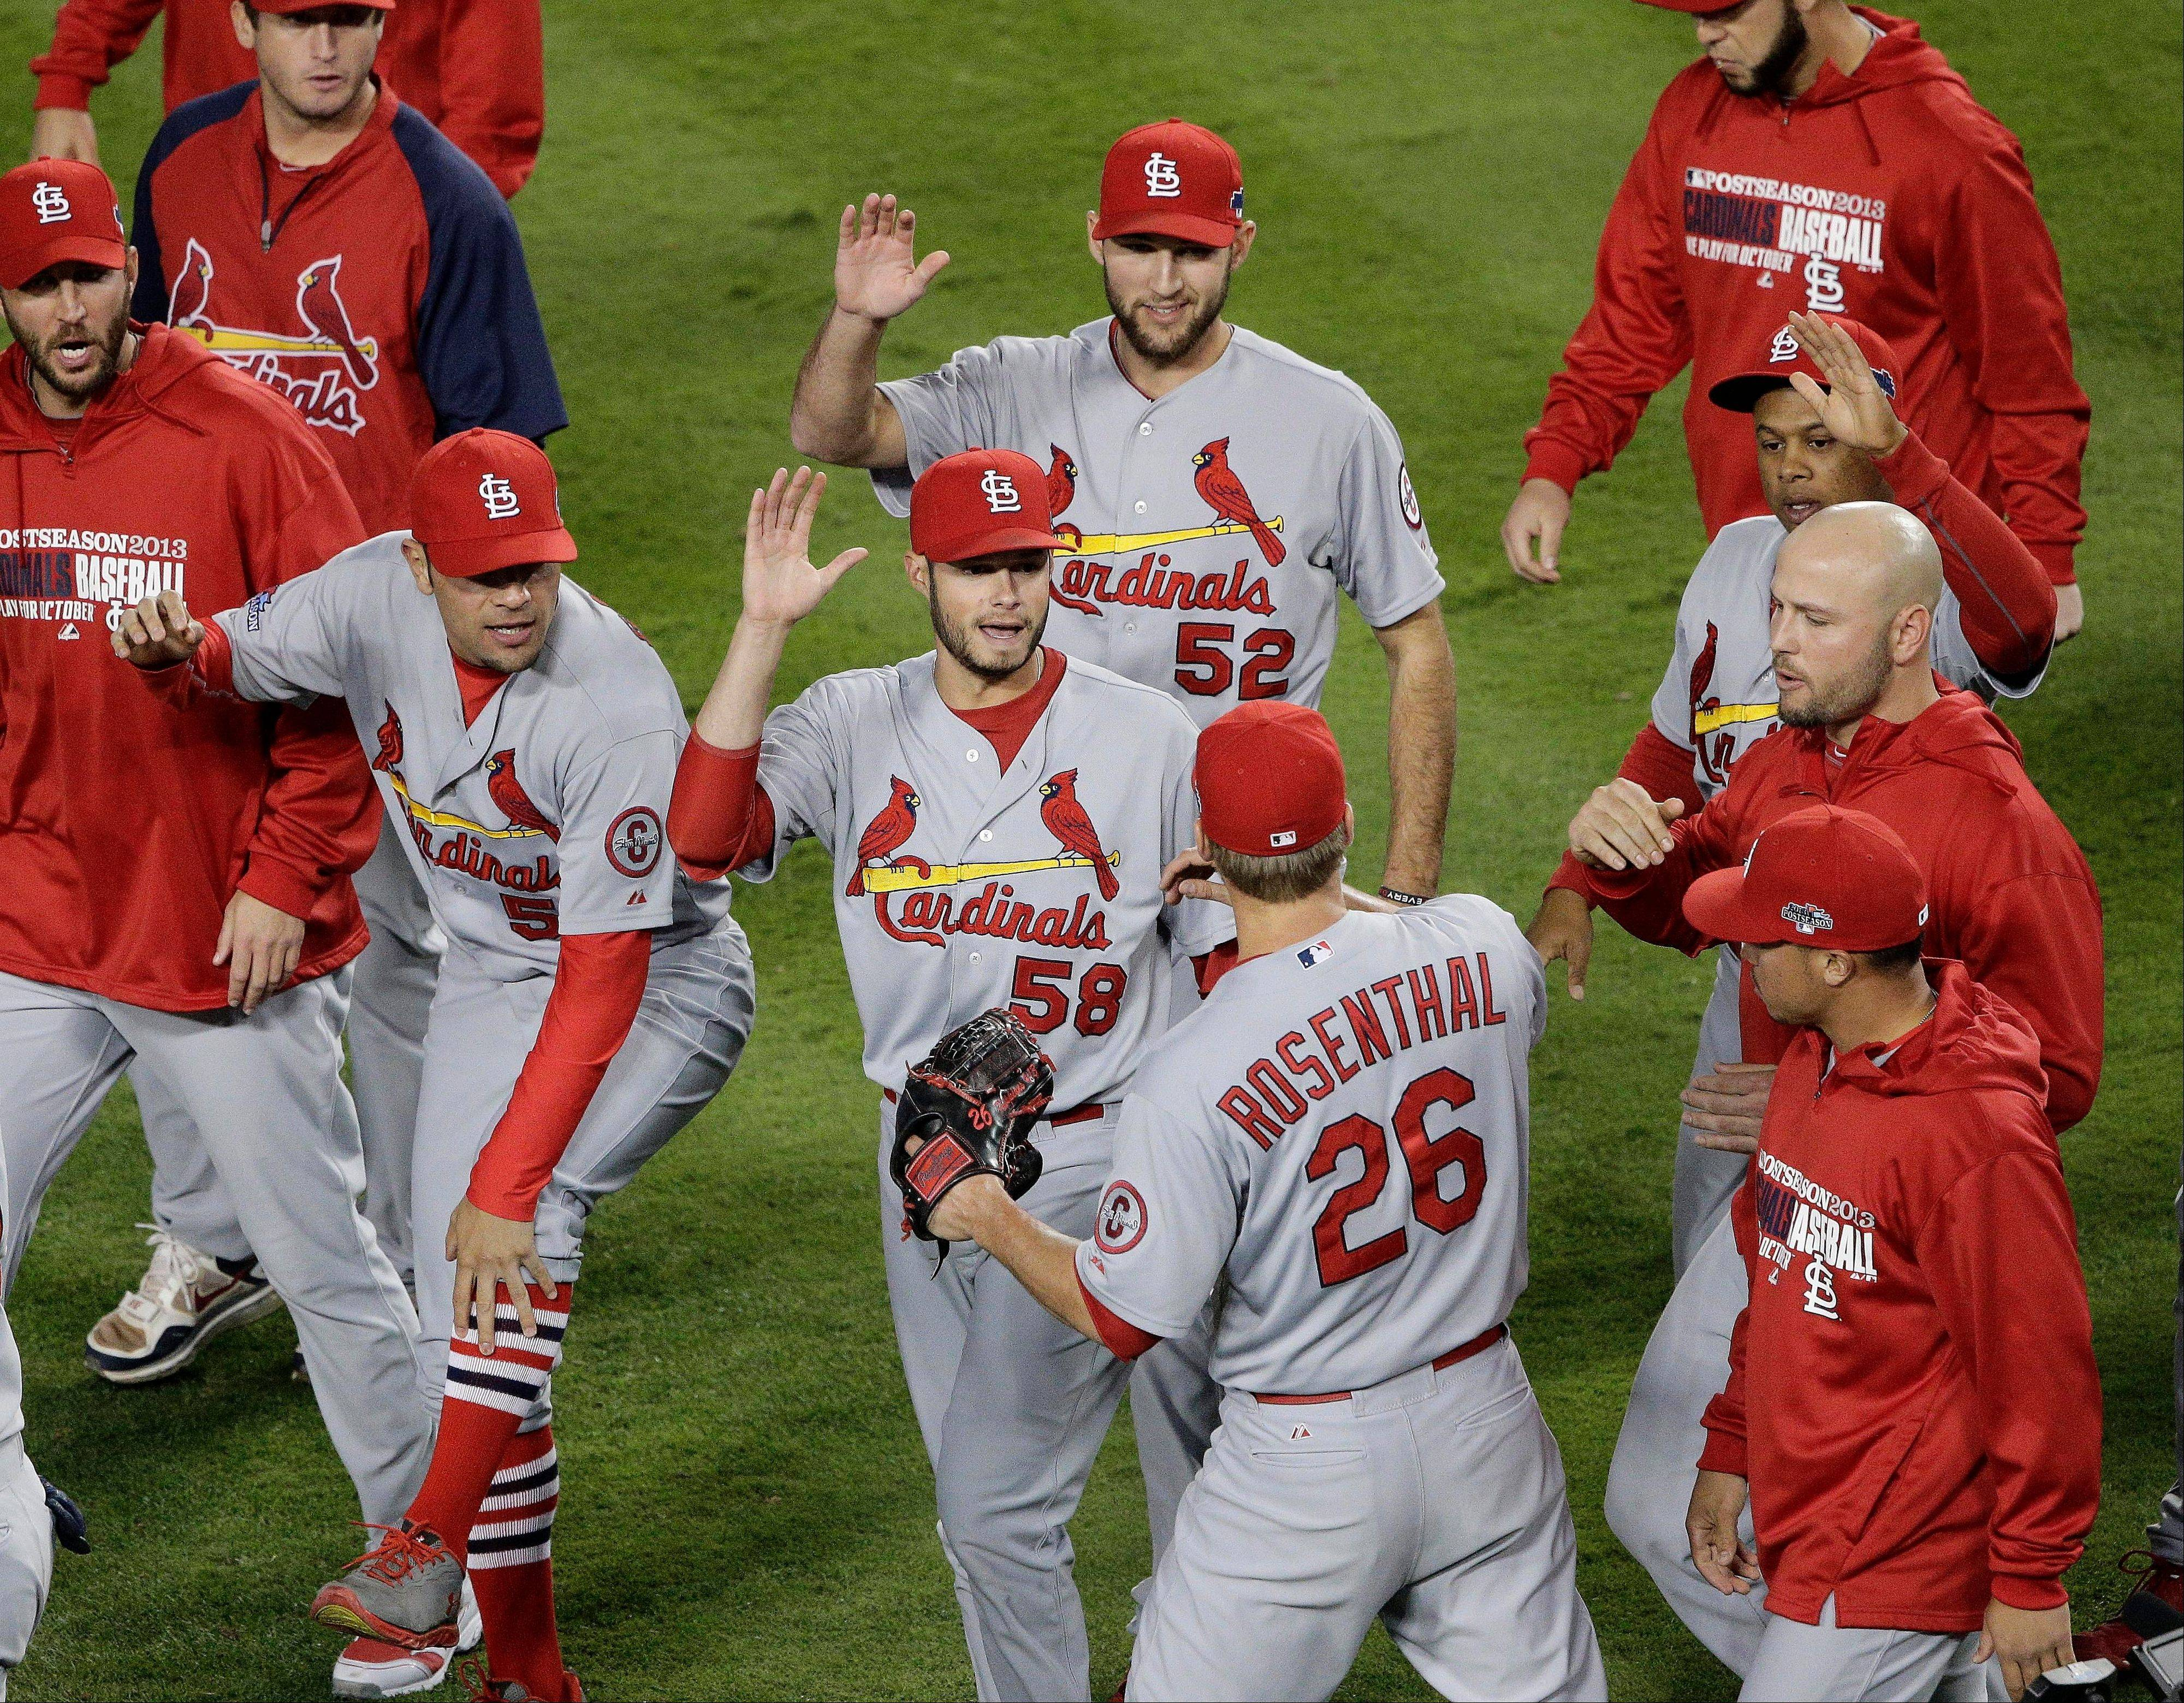 Cardinals relief pitcher Trevor Rosenthal (26) is congratulated by teammates after Game 4 of the National League Championship Series against the Los Angeles Dodgers on Tuesday in Los Angeles. The Cardinals won 4-2 to take a 3-1 lead in the series.